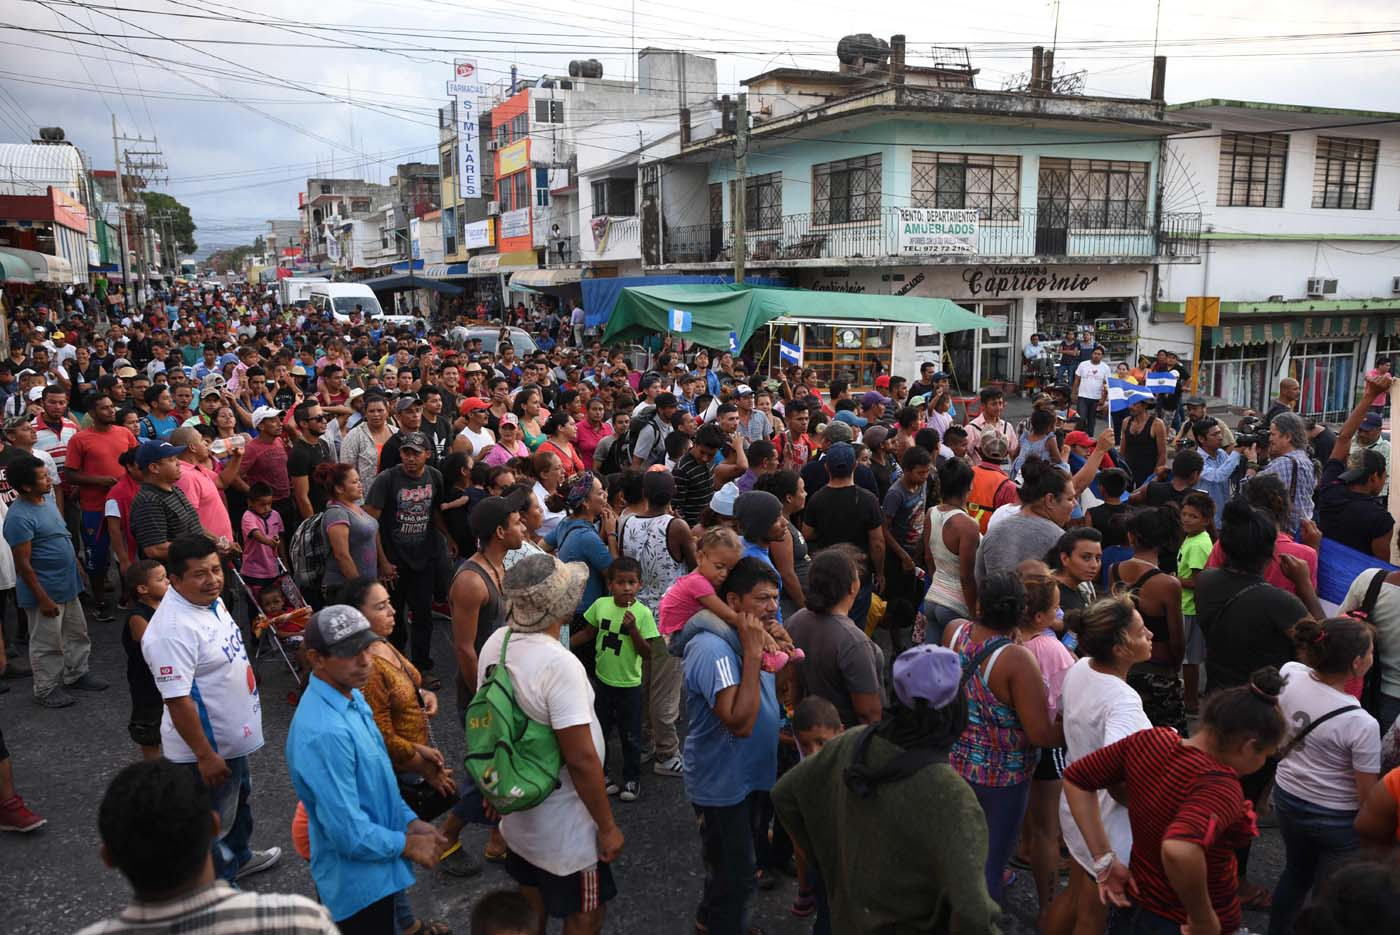 """Central American migrants taking part in a caravan called """"Migrant Viacrucis"""" towards the United States march to protest against US President Donald Trump's policies as they remain stranded in Matias Romero, Oaxaca State, Mexico, on April 3, 2018.  The hundreds of Central Americans in the """"Way of the Cross"""" migrant caravan have infuriated Trump, but they are not moving very fast -- if at all -- and remain far from the US border. As Trump vowed Tuesday to send troops to secure the southern US border, the caravan was camped out for the third straight day in the town of Matias Romero, in southern Mexico, more than 3,000 kilometers (1,800 miles) from the United States.  / AFP PHOTO / VICTORIA RAZO"""